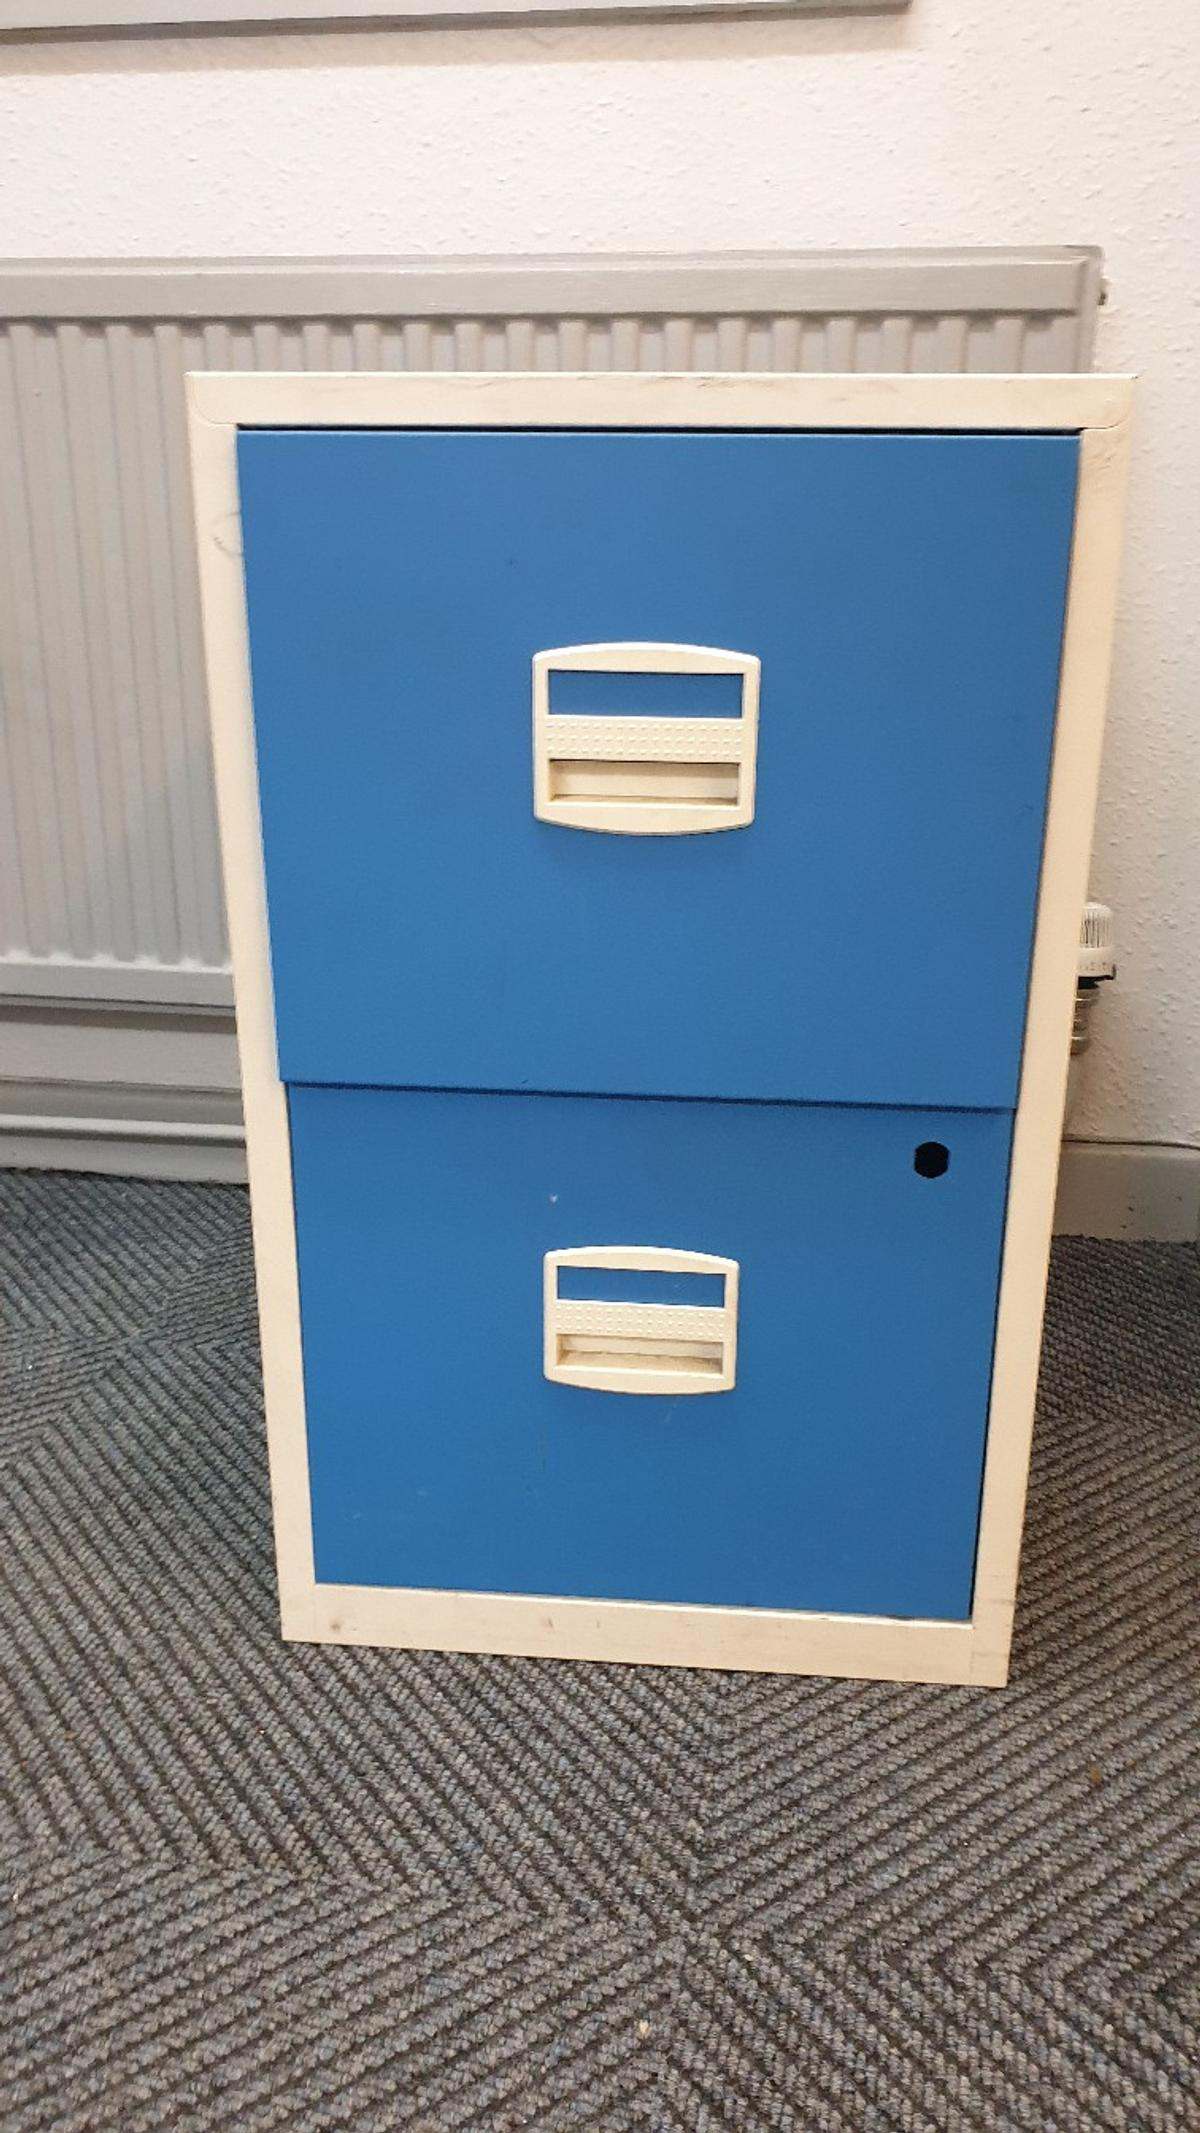 Metal Filing Cabinets In Ls11 Leeds For 40 00 For Sale Shpock